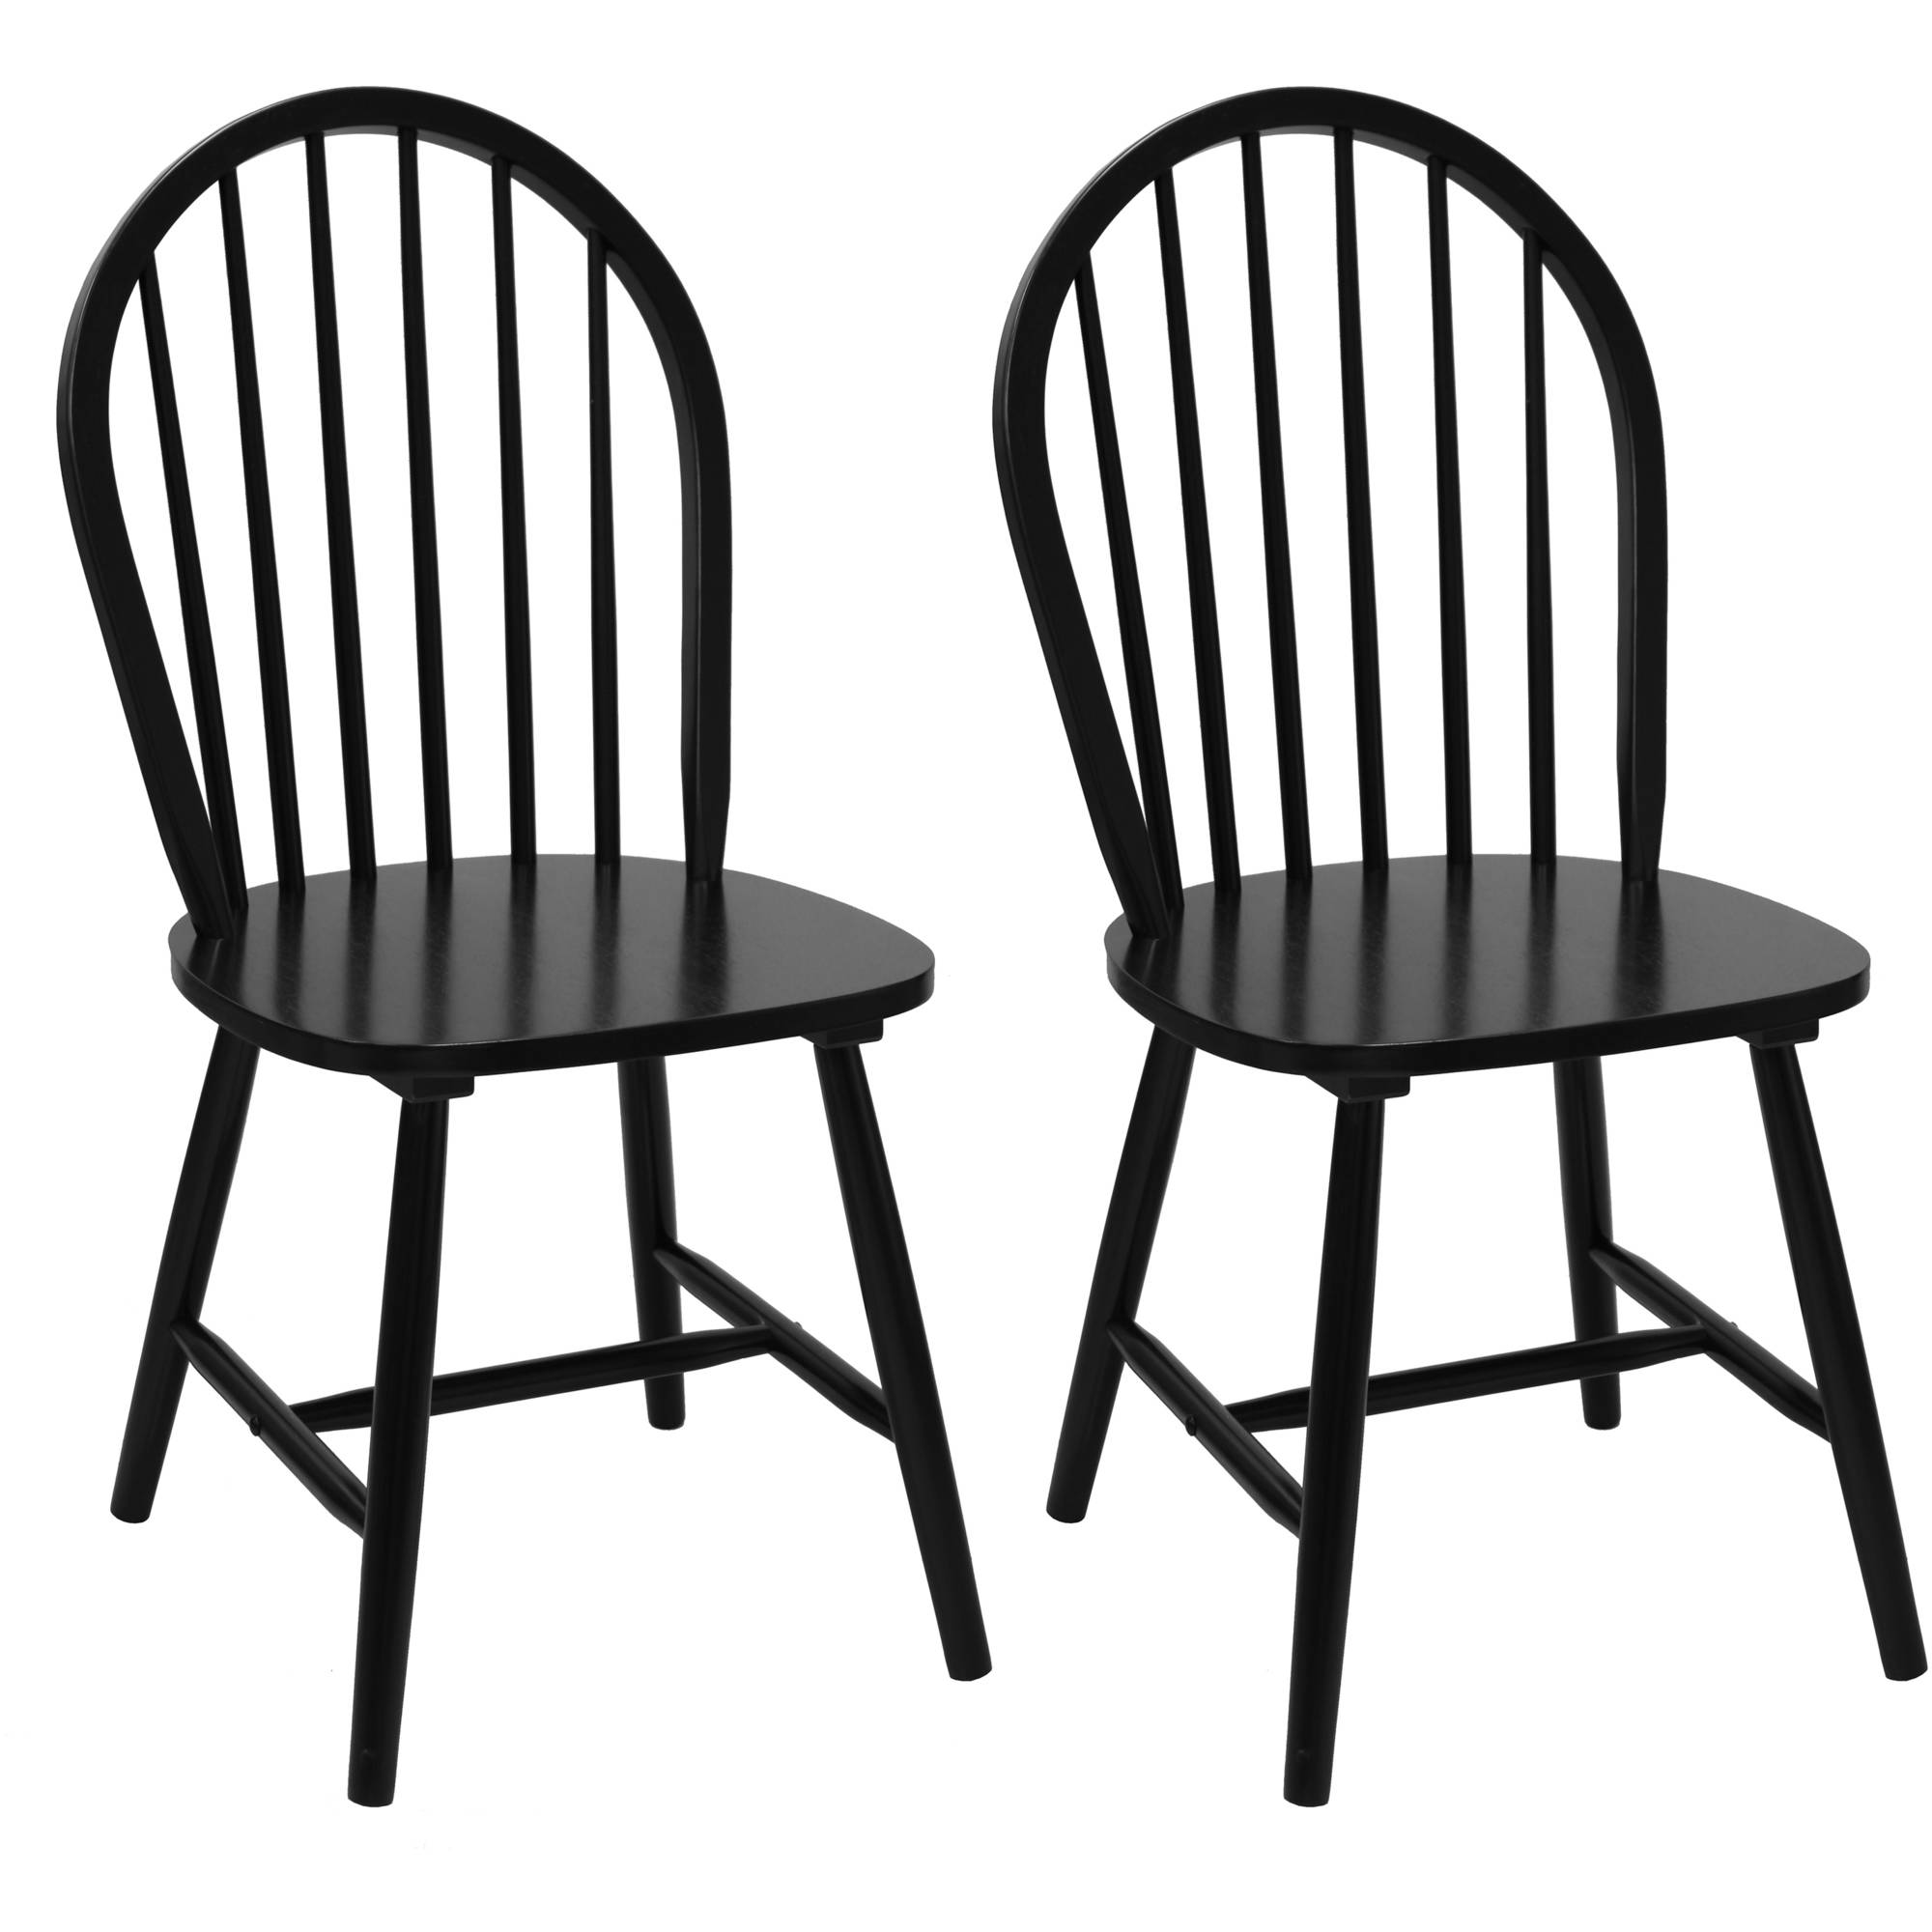 Mainstays Windsor Chairs Set of 2 Black Walmart